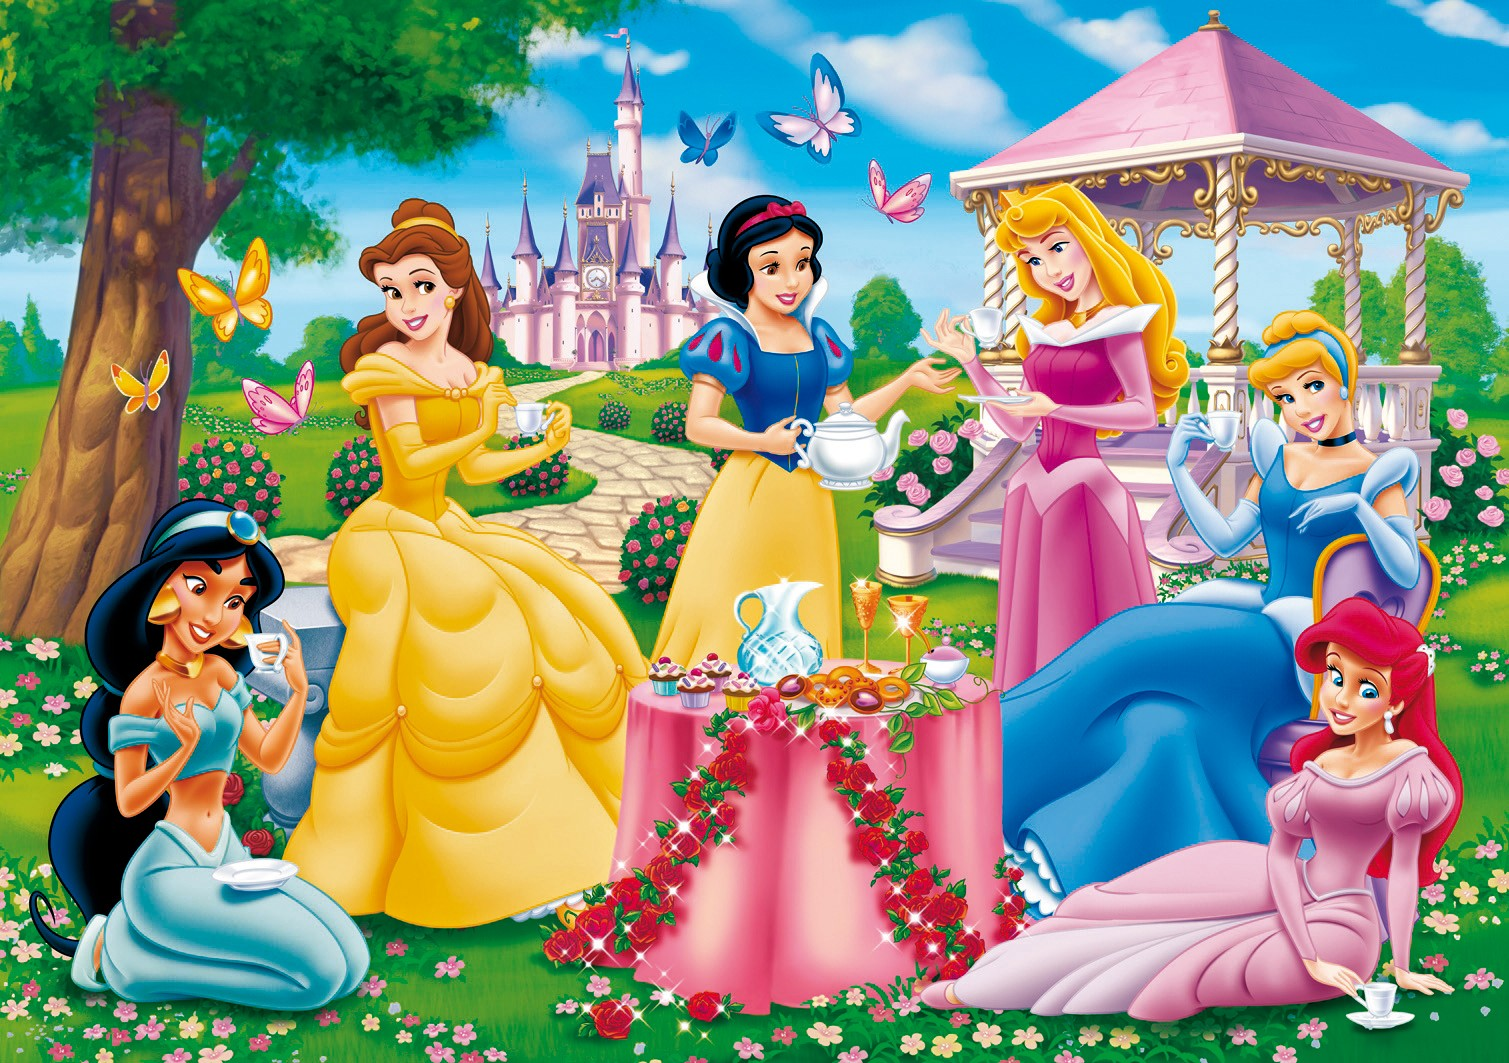 Princesses princess disney